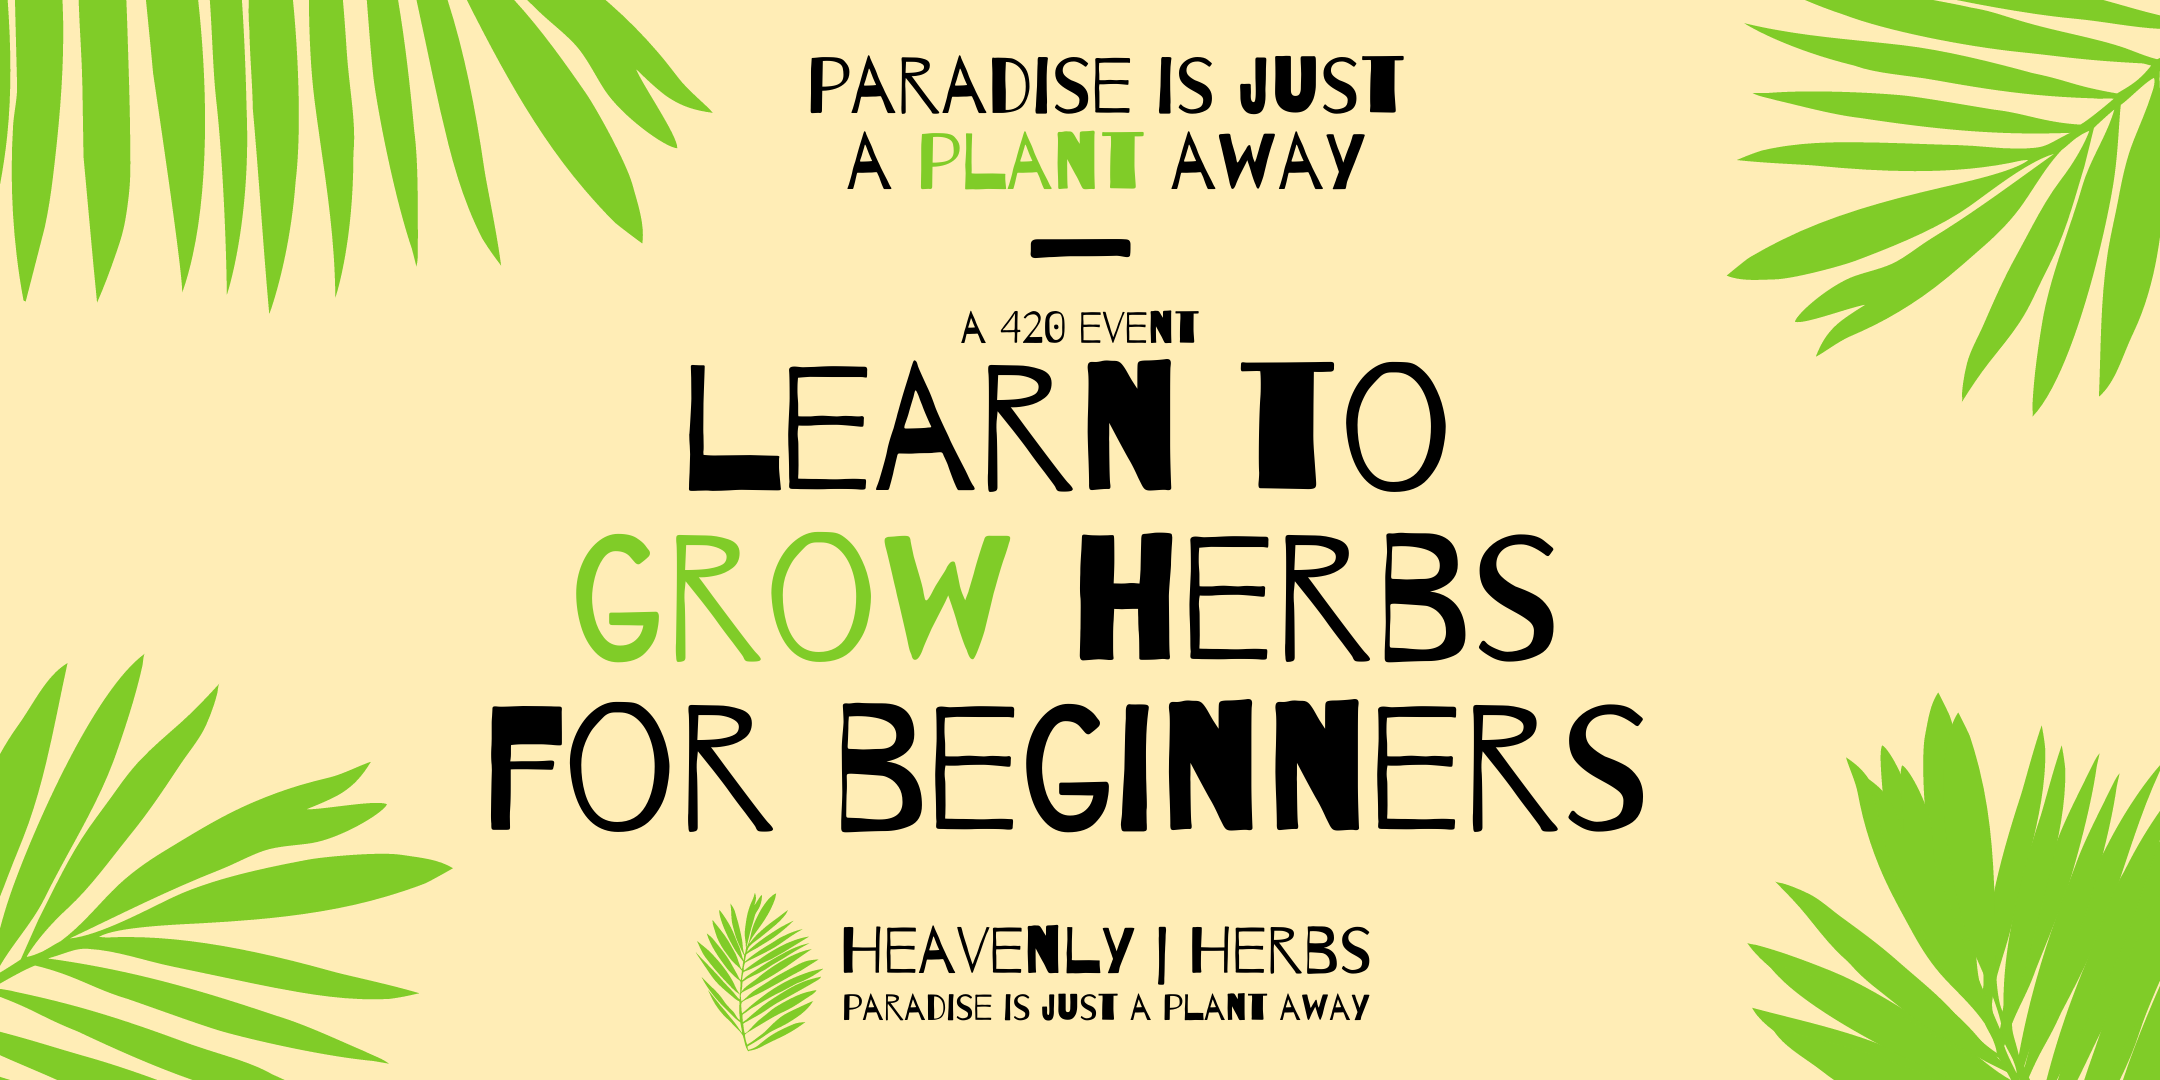 Learn to Grow Herbs for Beginners